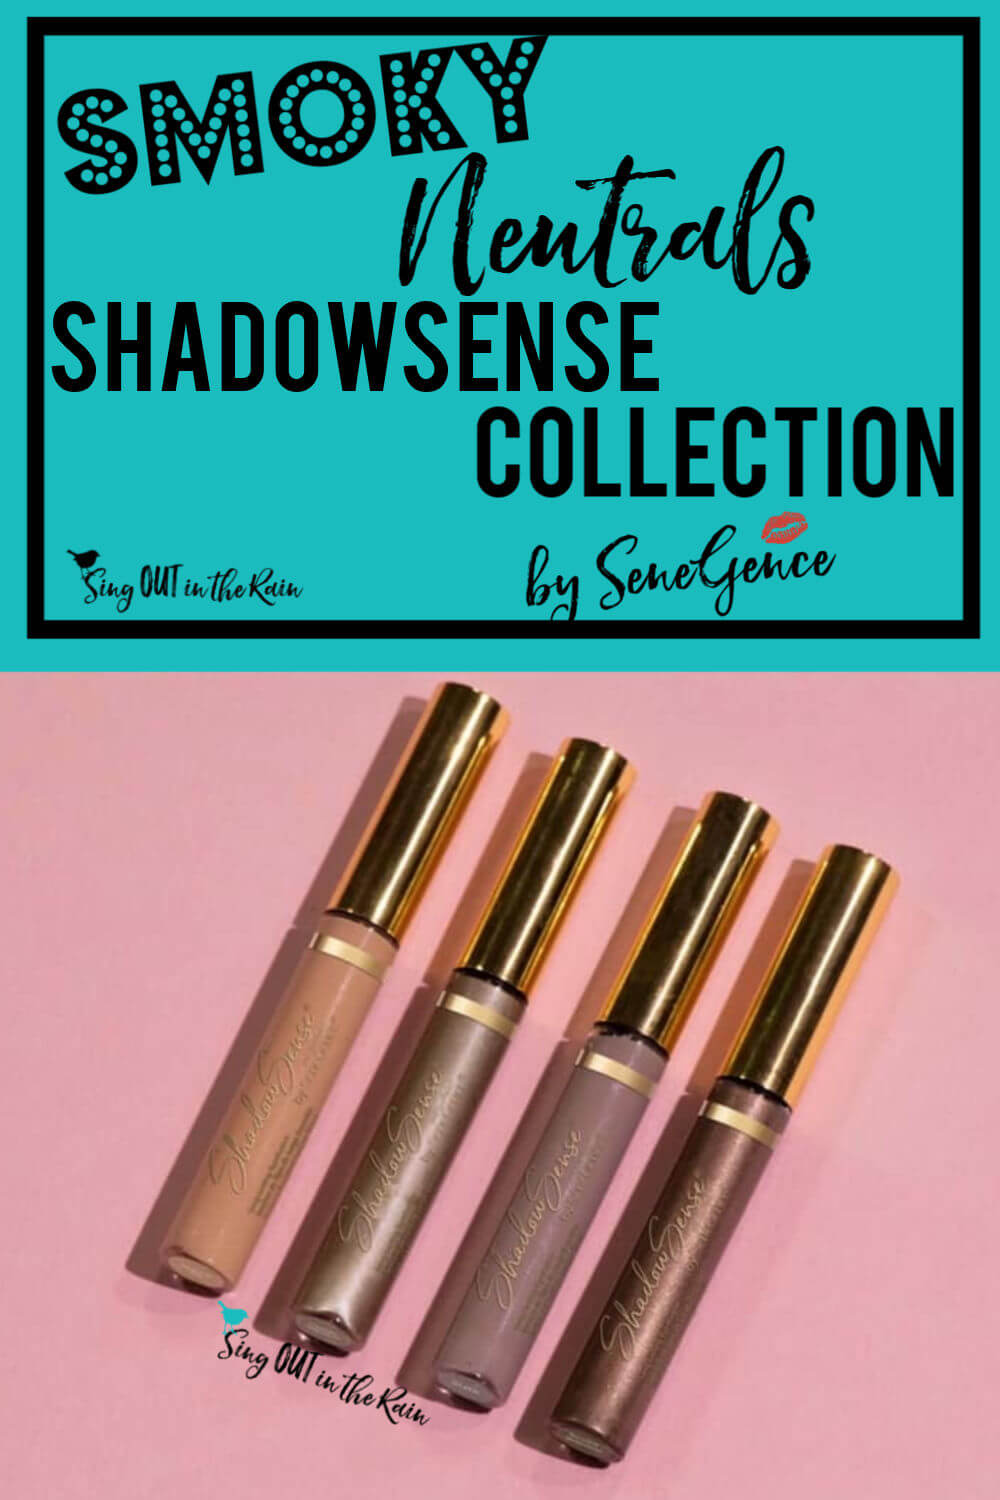 The Smoky Neutrals ShadowSense Collection by SeneGence is smoky and sultry.  Nail your next smoked out eye look by using one of these four Limited Edition eyeshadow colors: slate, pewter shimmer, natural tan & smoke shimmer.  Smoke out your look and it will last all day.  No smudging or budging - just gorgeous eyes all day long.  #senegence #shadowsense #smokyneutrals #smokeitout #smokyeye #eyemakeup